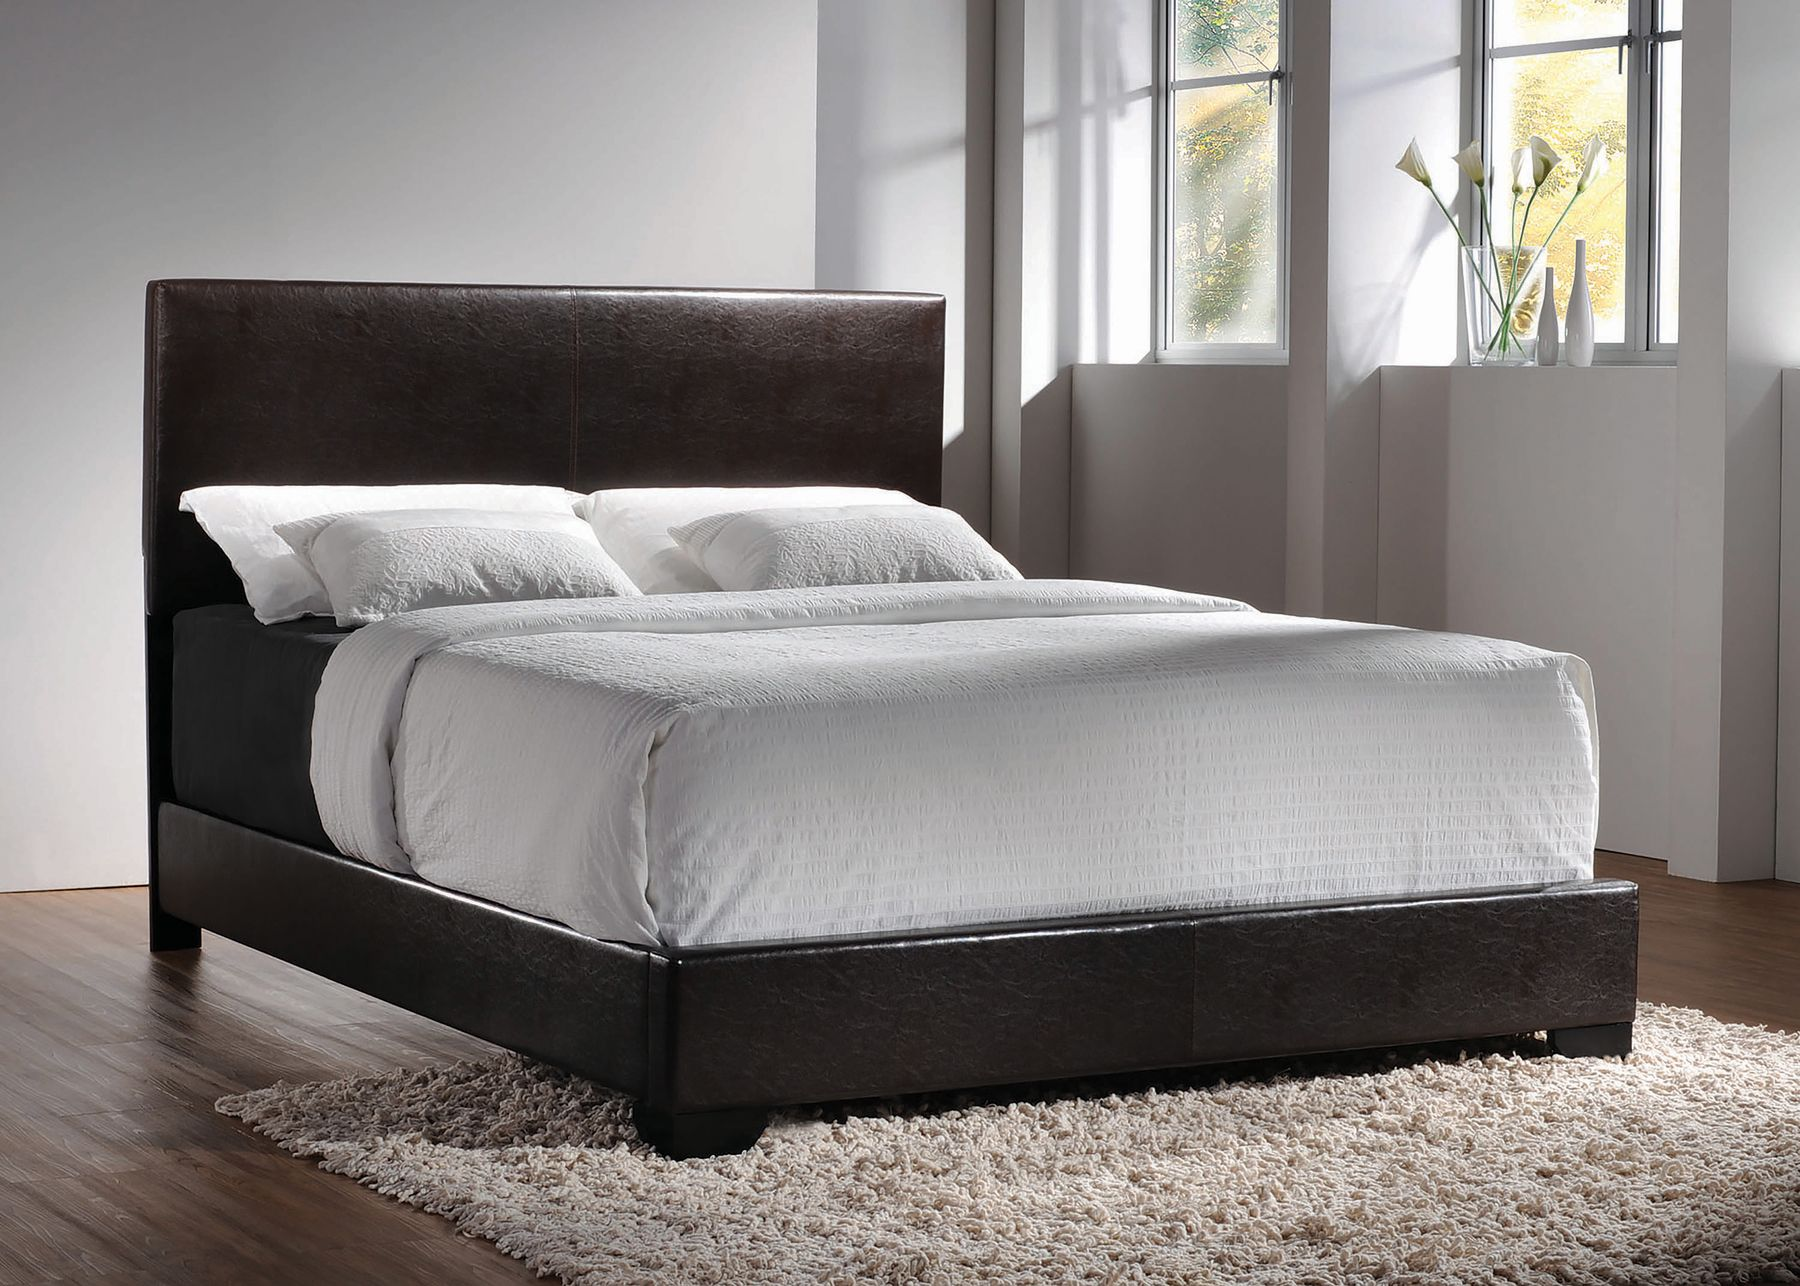 Conner Twin Size Bed 300261t Coaster Furniture Twin Size Beds In